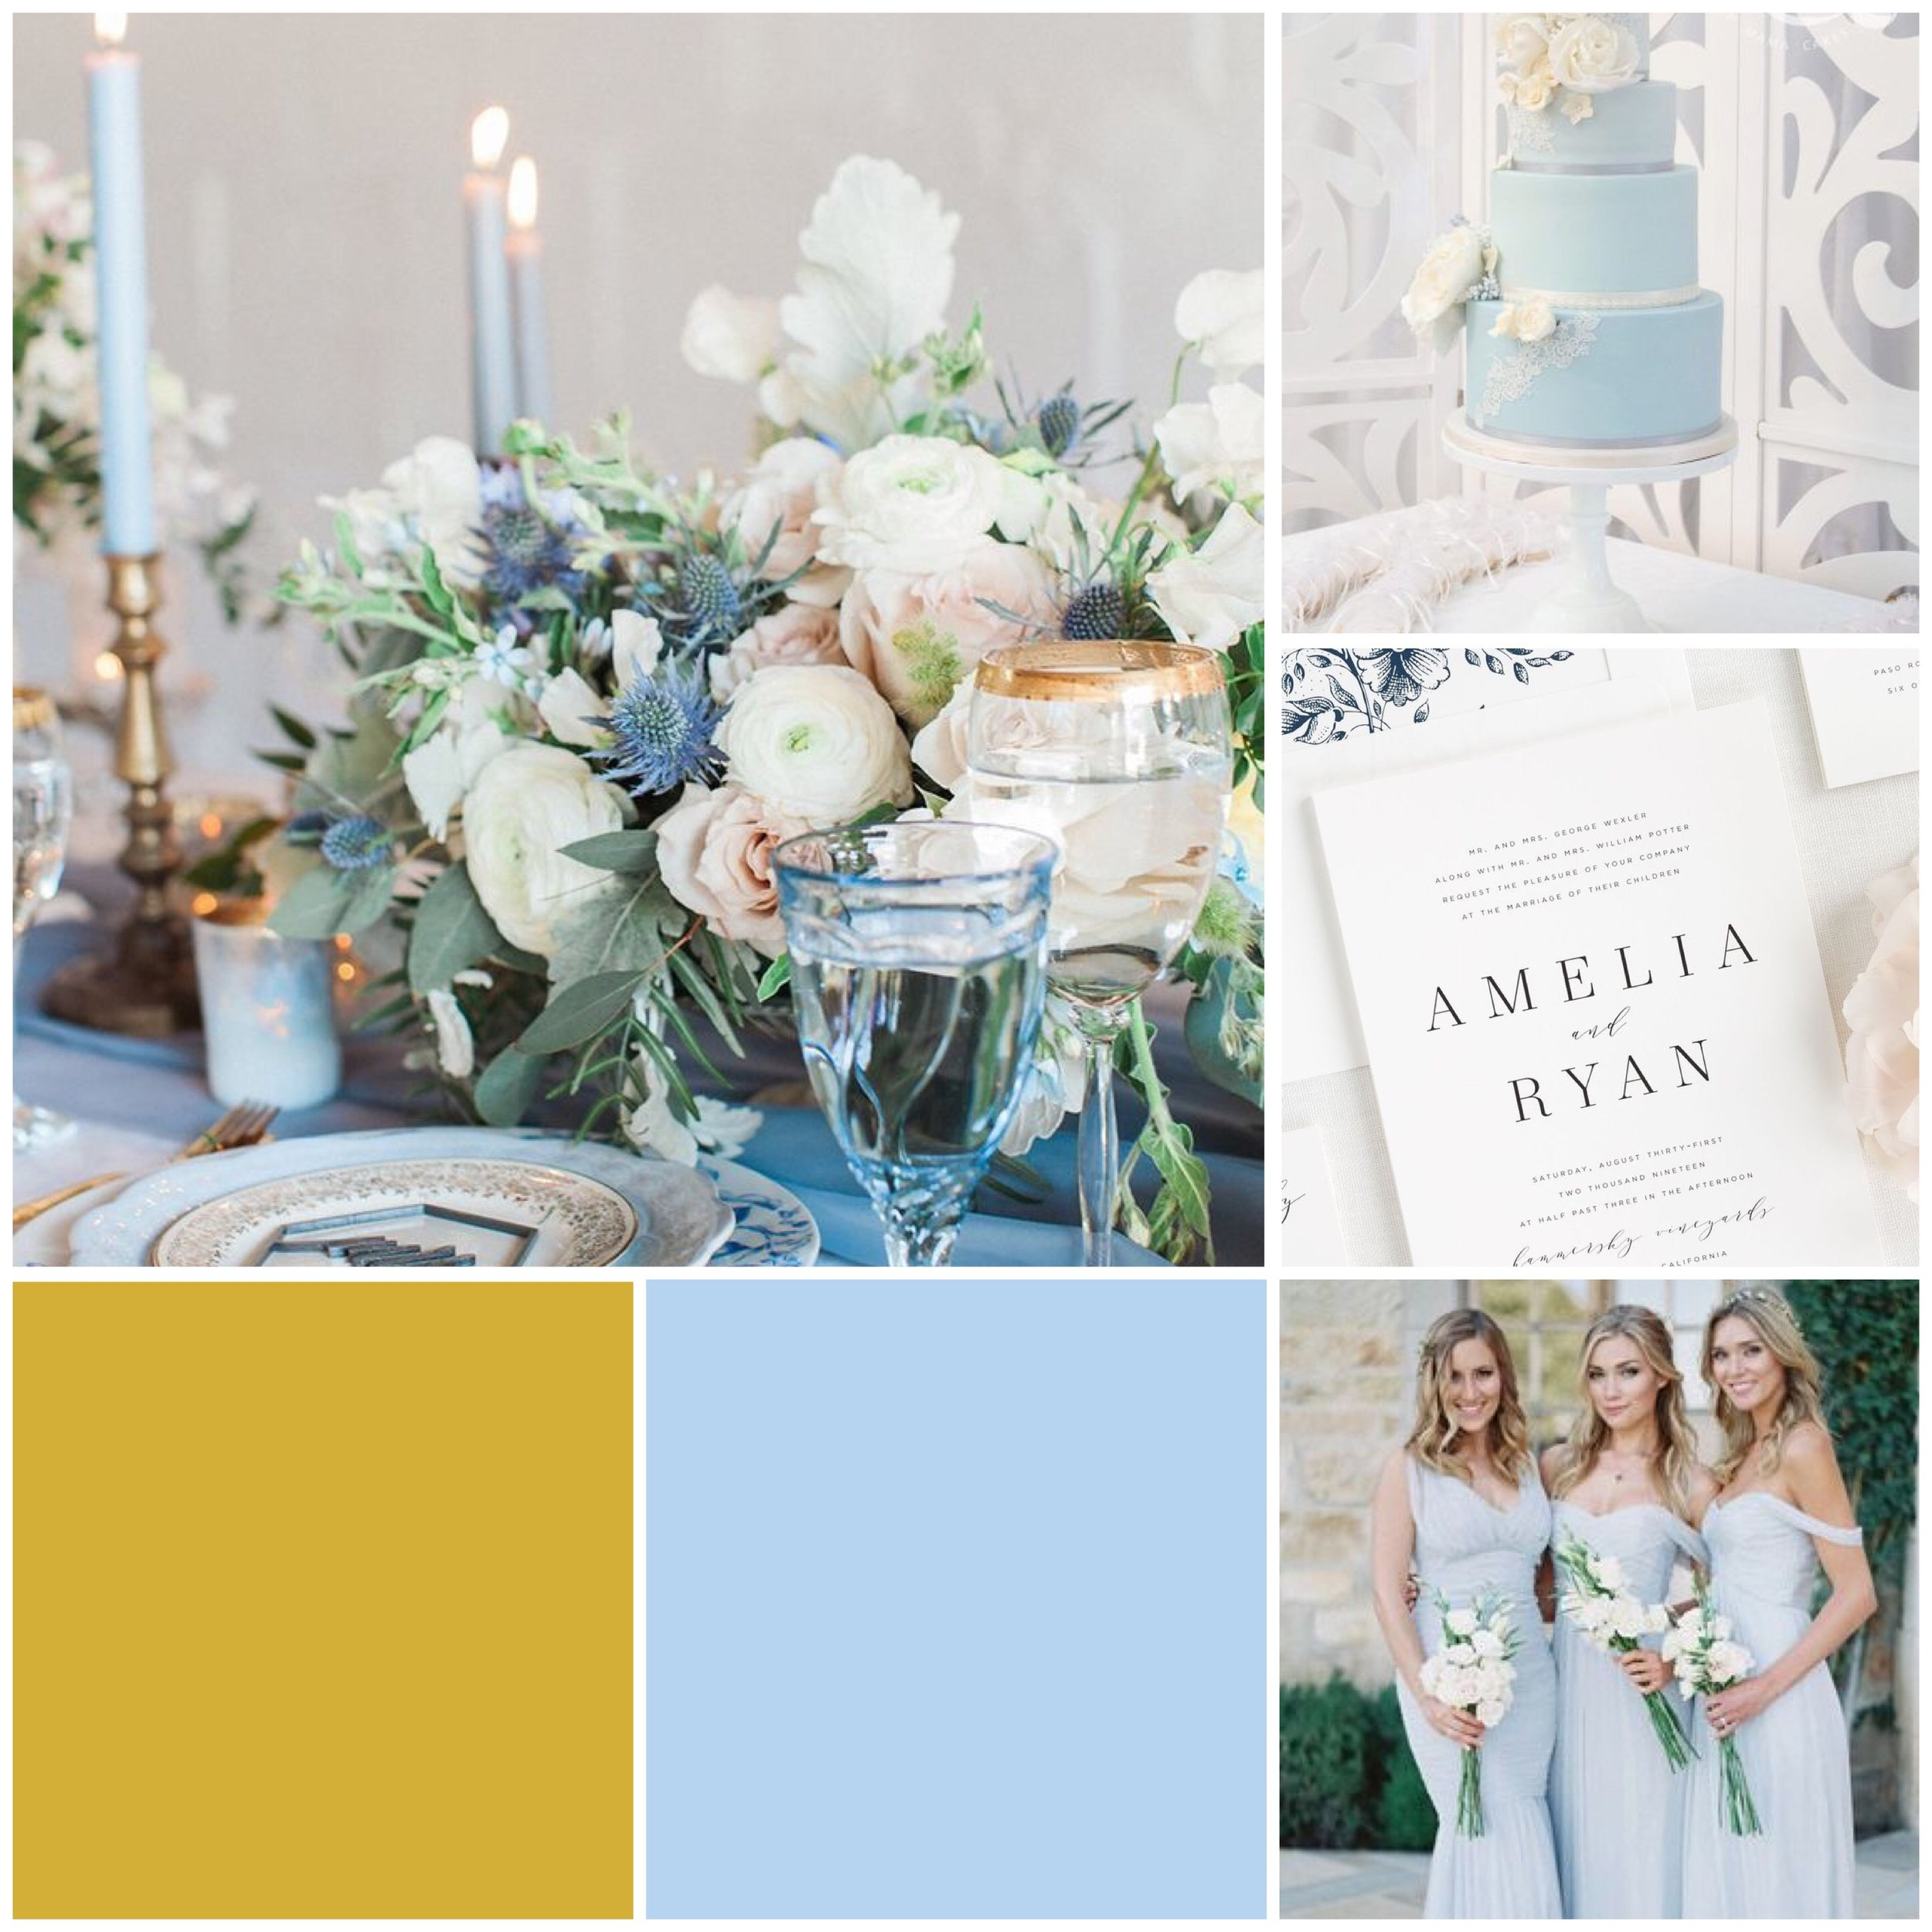 Capri & Gold Moodboard for your wedding inspiration.